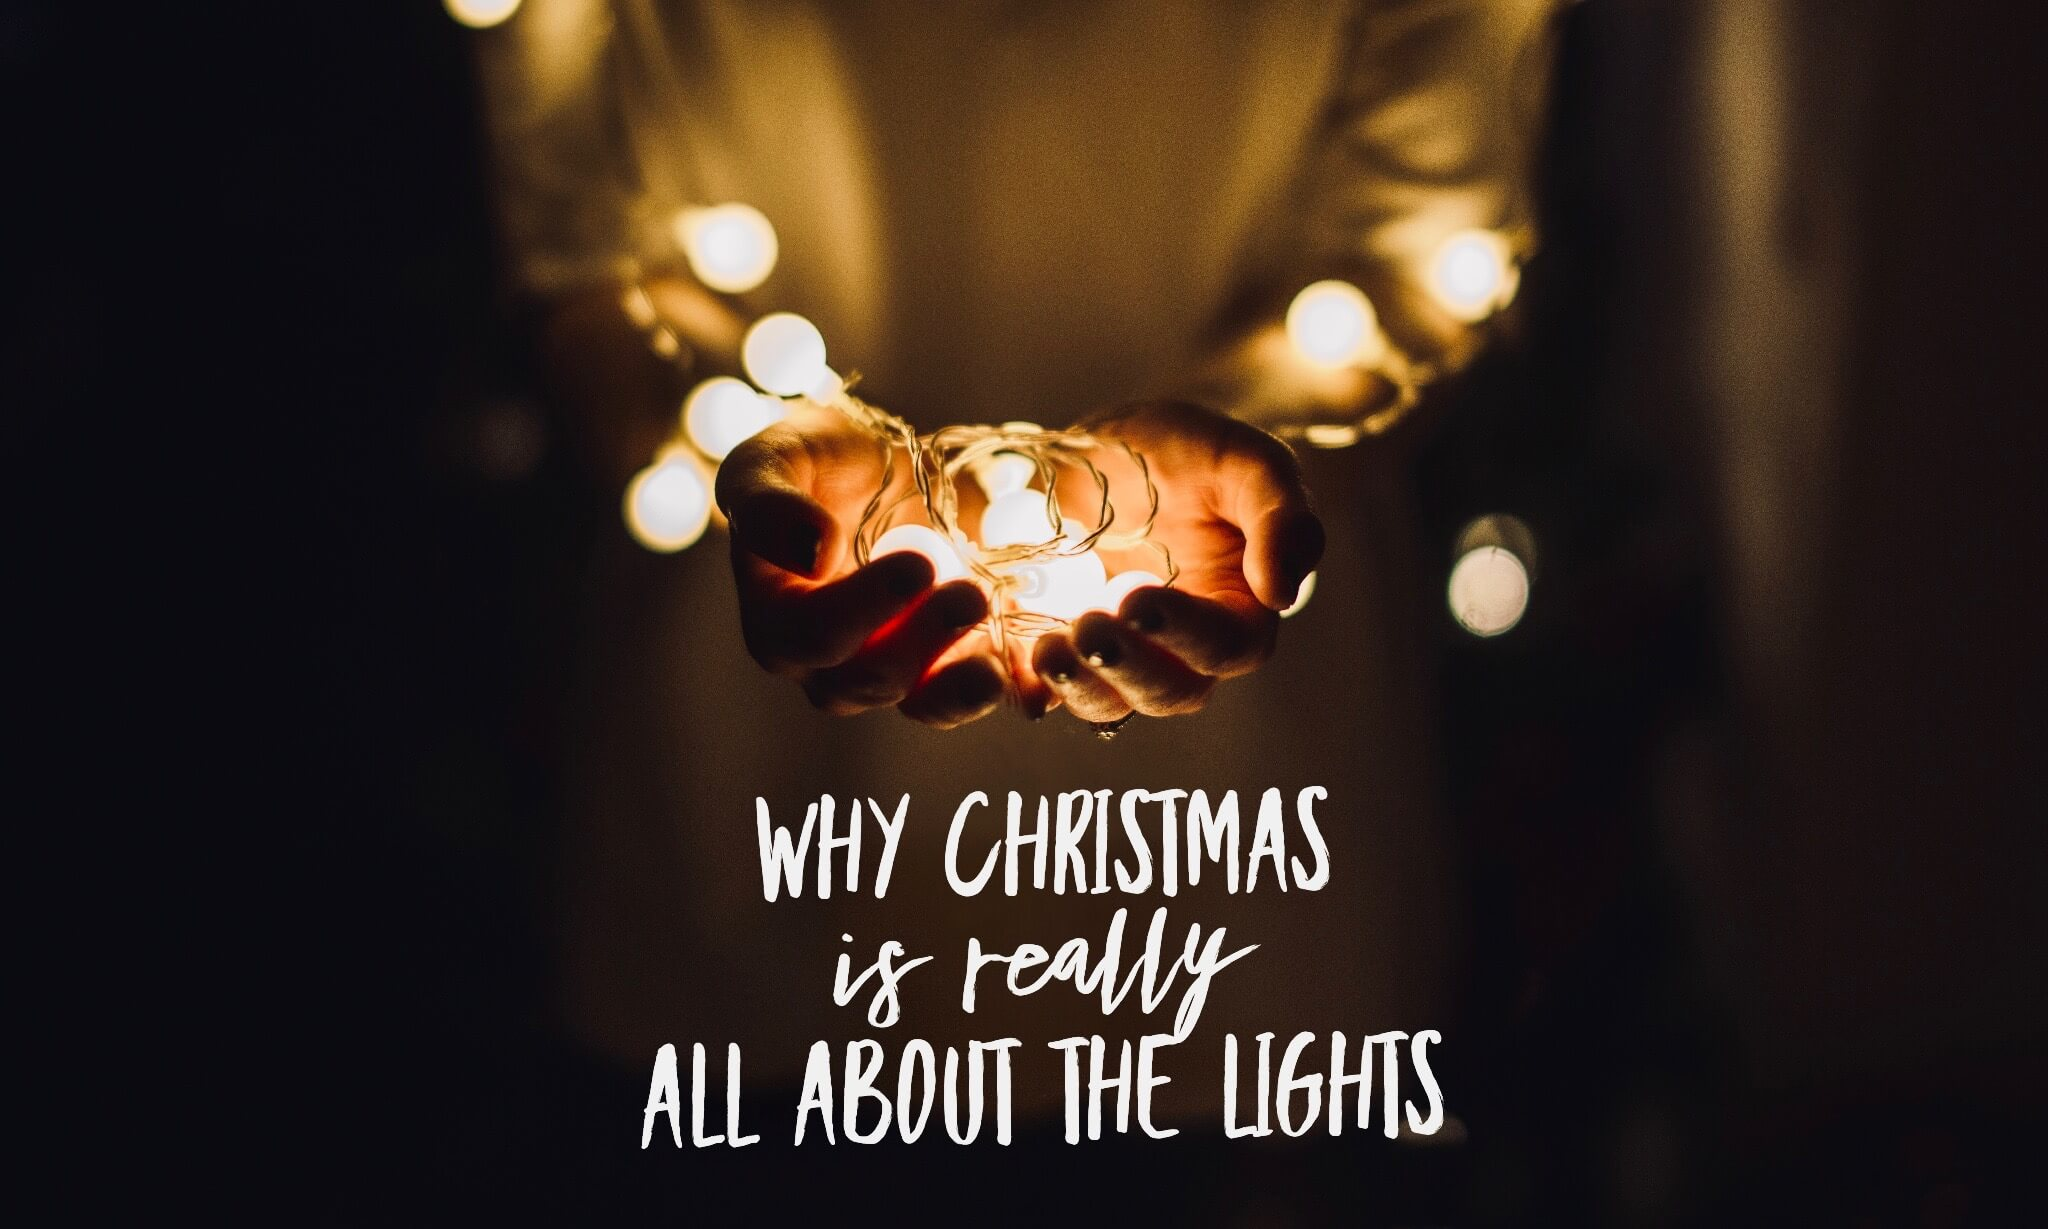 Why christmas is really all about the lights pro preacher for Why christmas is the best holiday